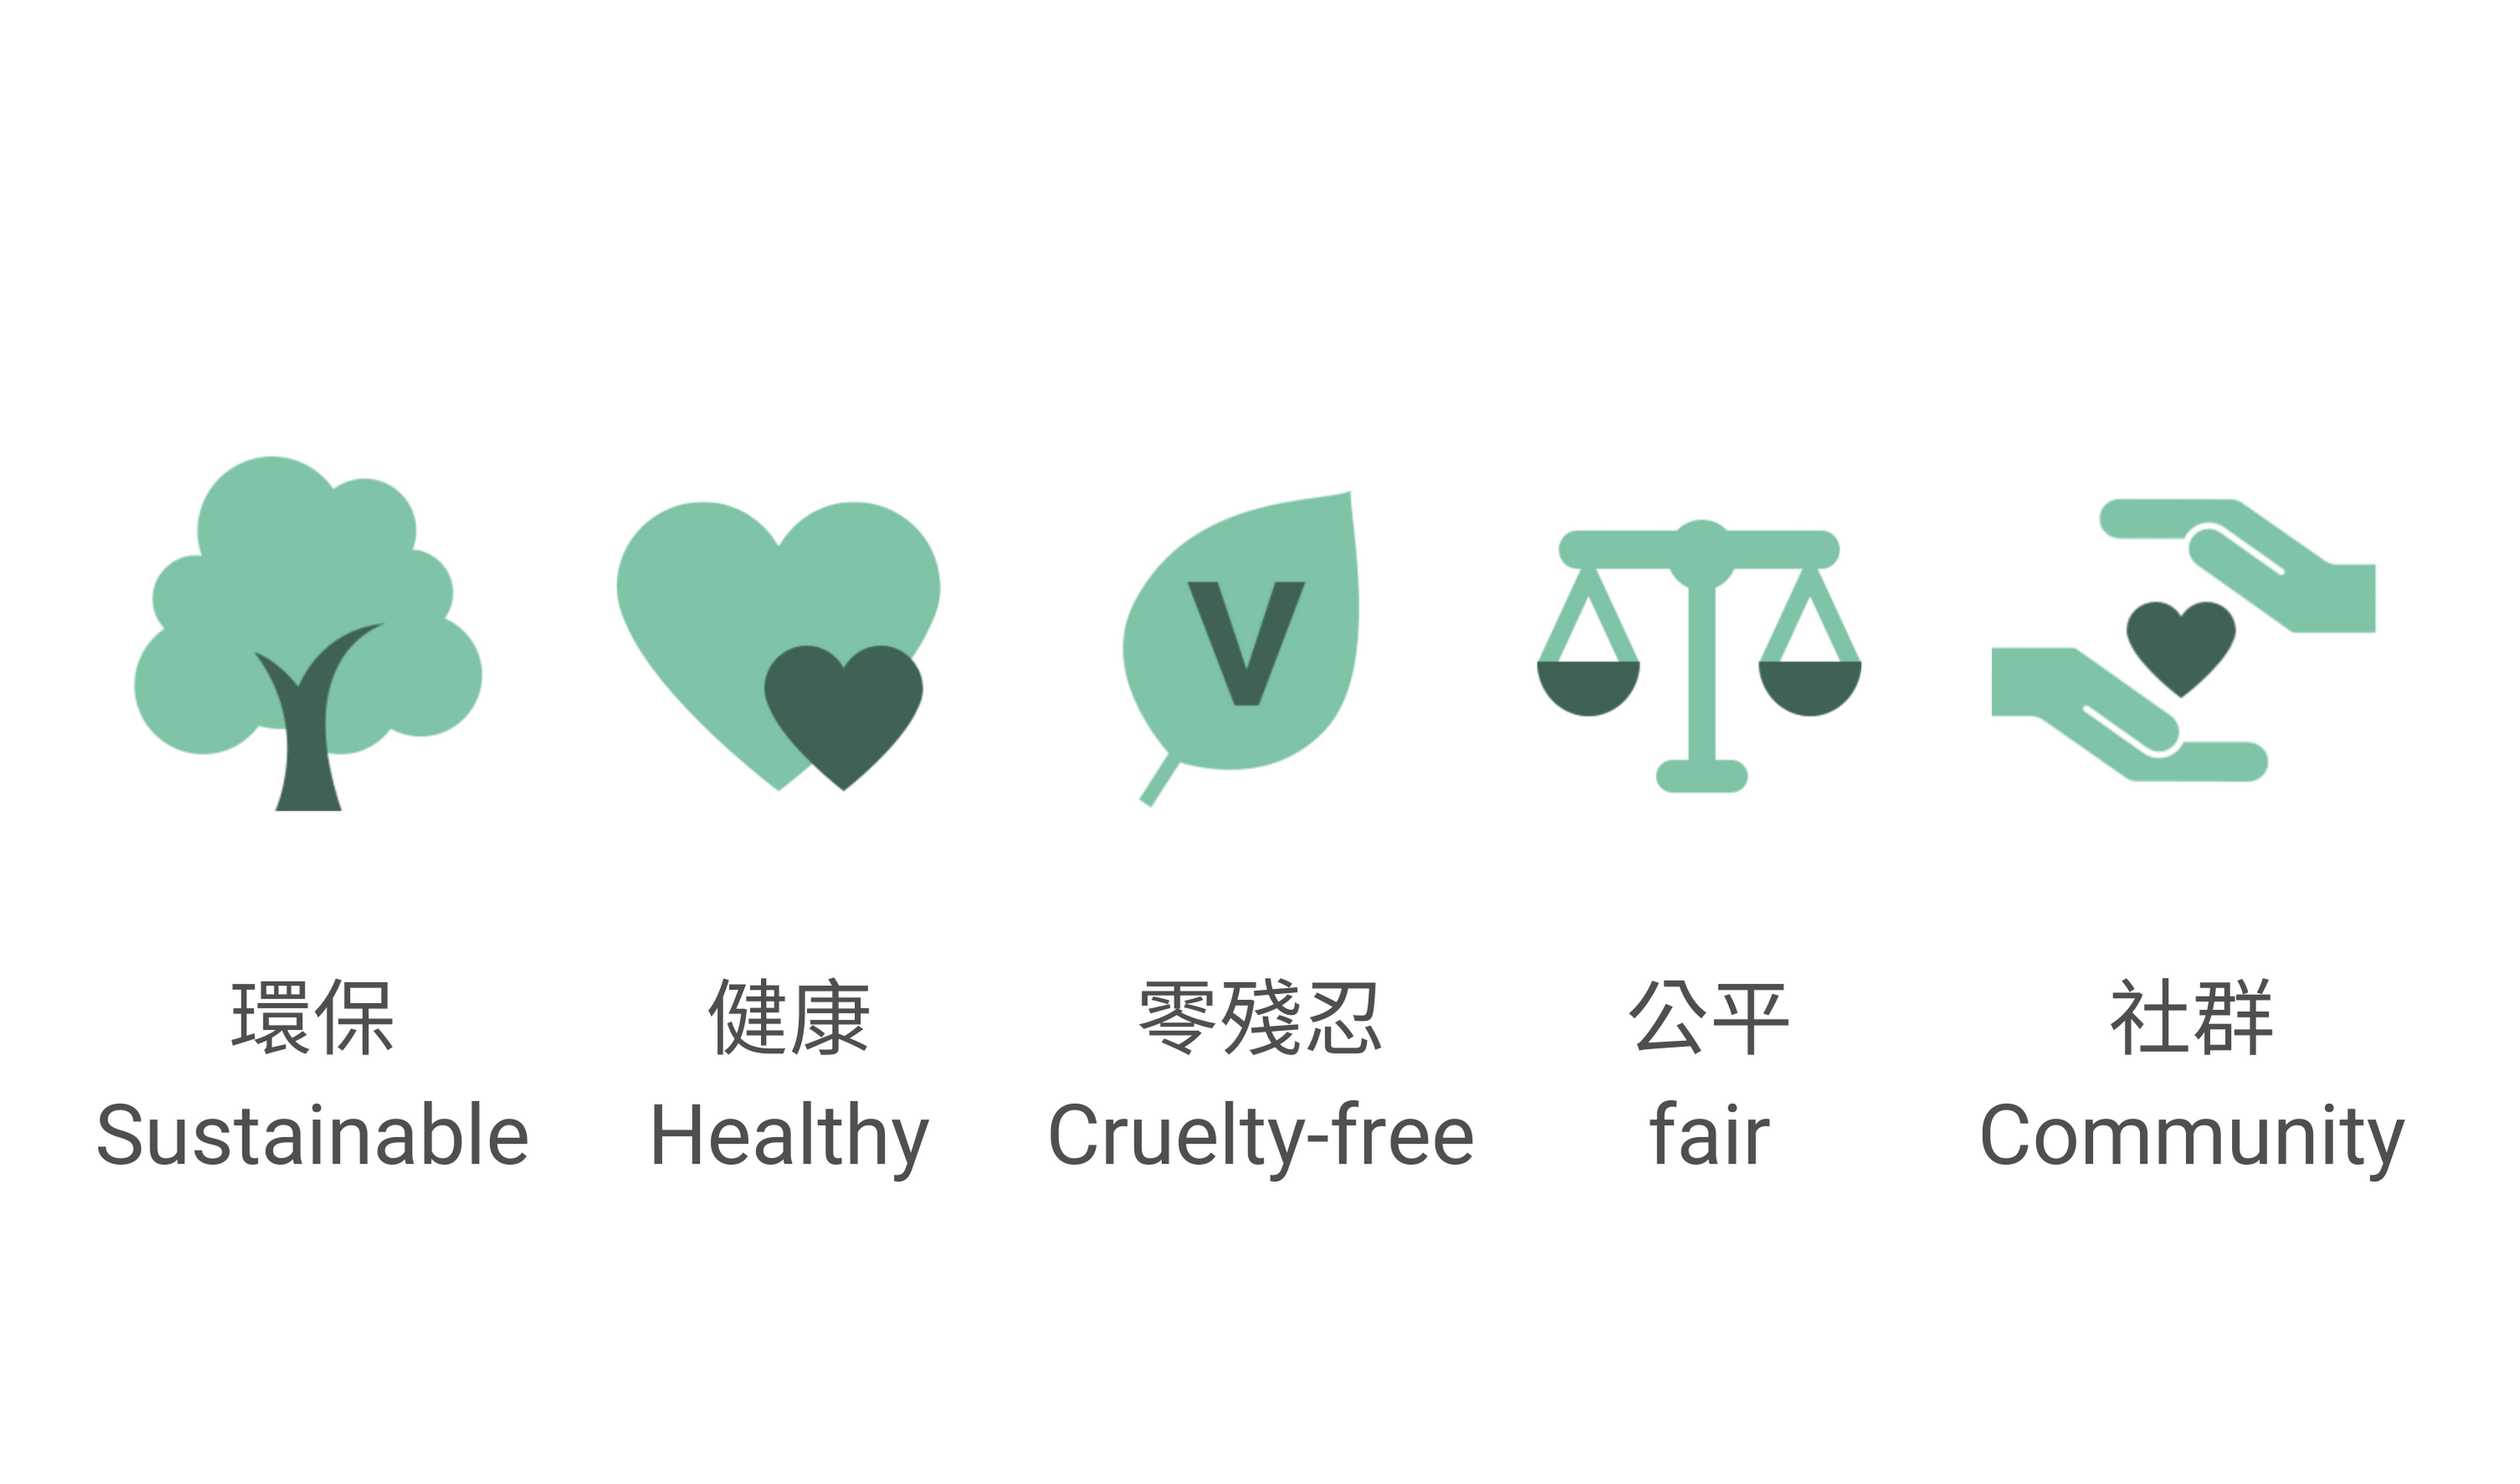 核心理念 OUR CORE VALUES